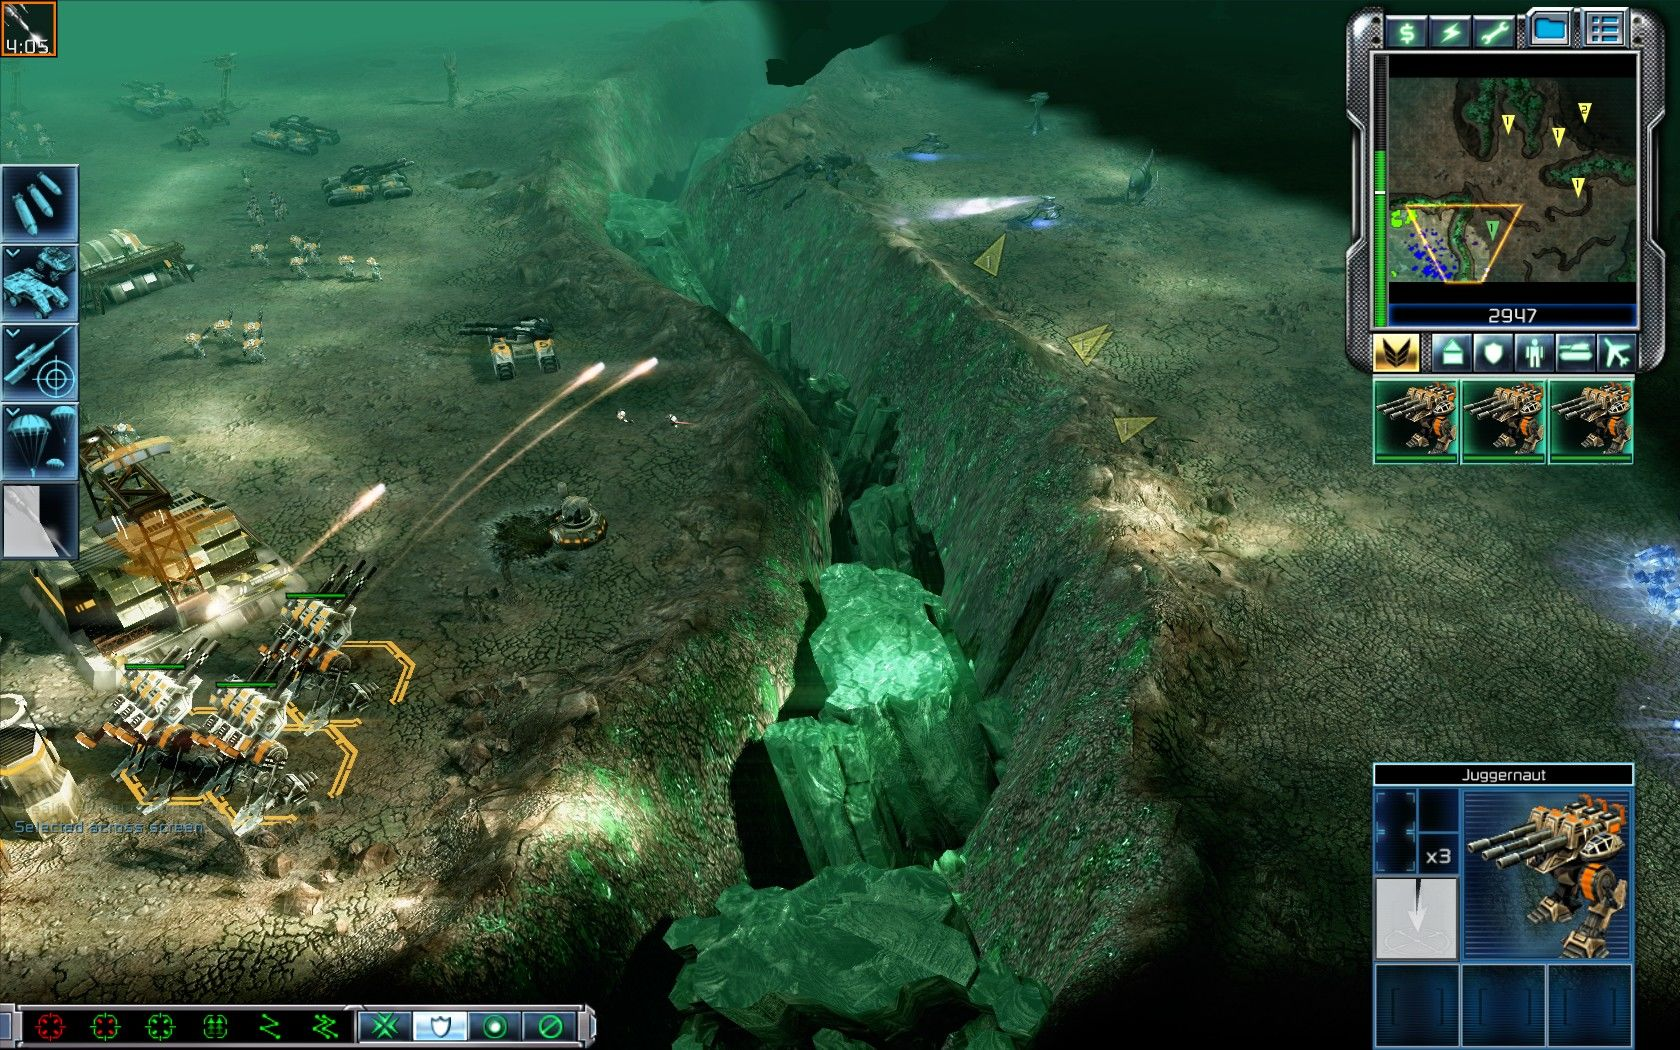 Command & Conquer 3: Tiberium Wars Windows Juggernauts form a deadly combination with Sniper units.